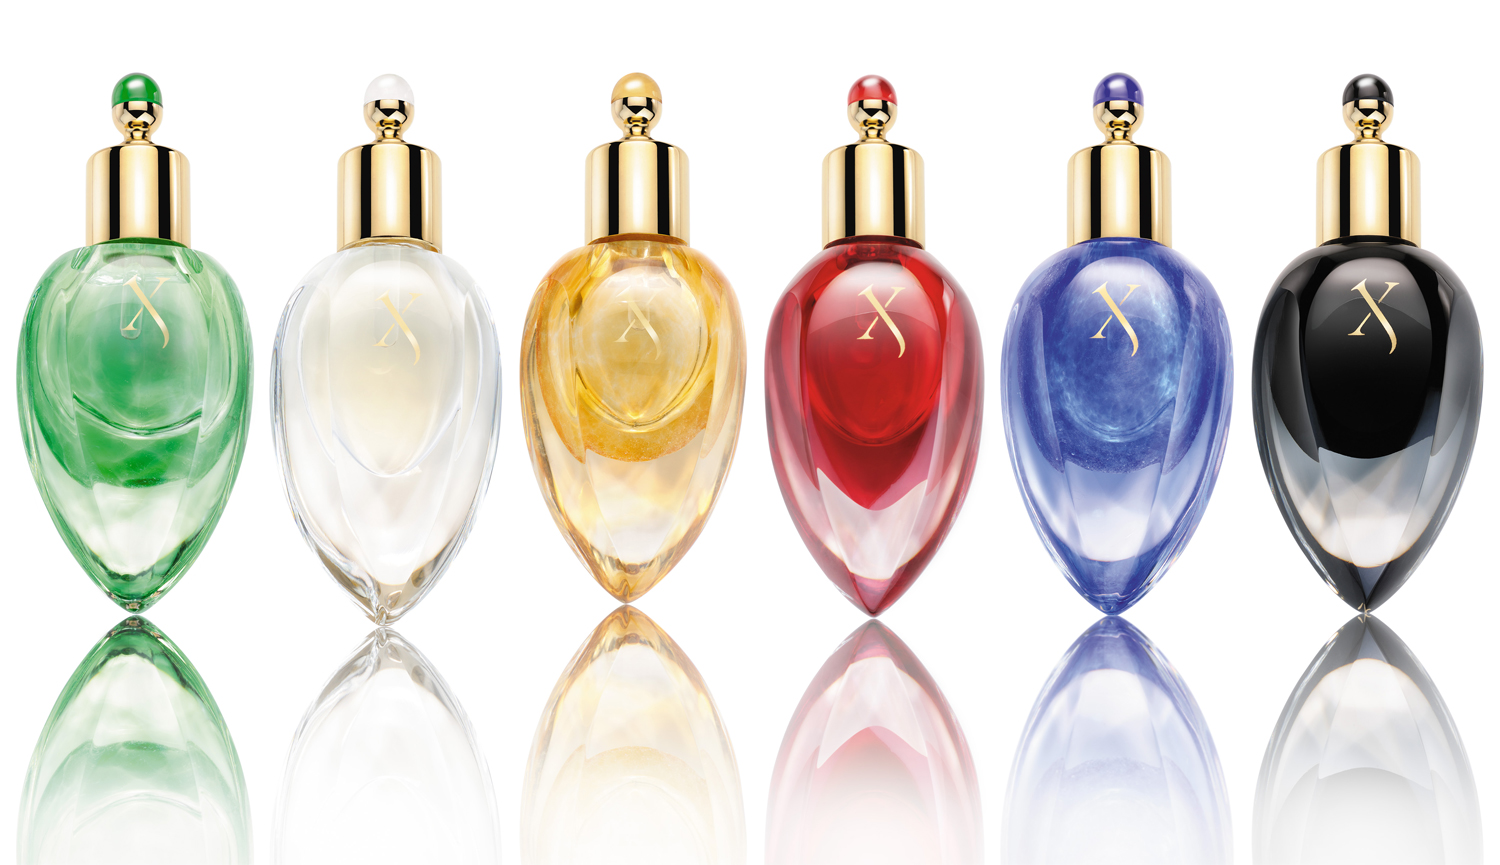 Haute Italian perfume house Xerjoff launches BEGUM 4